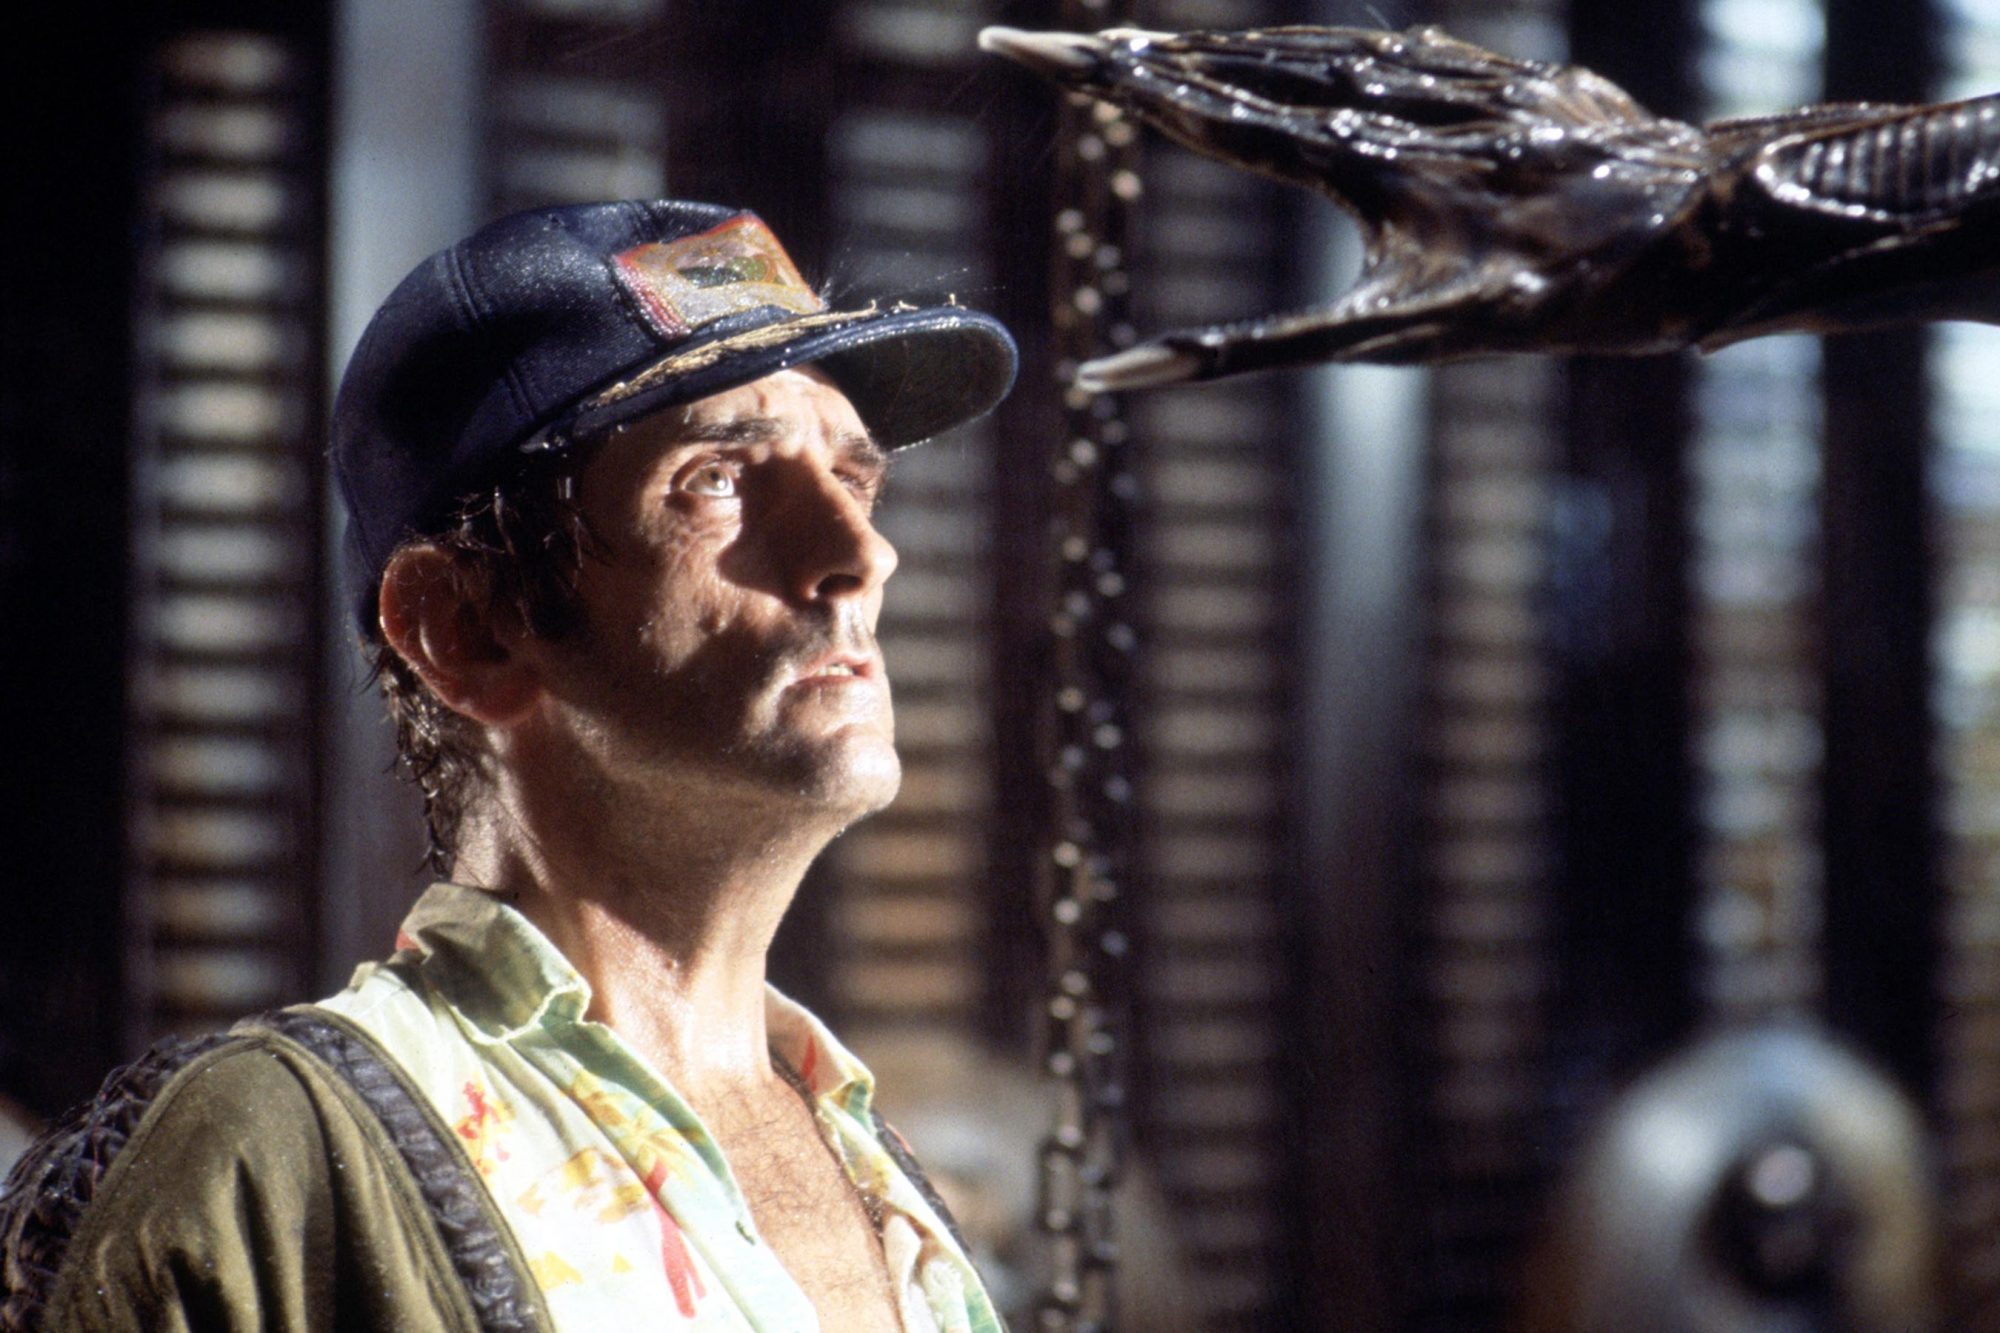 ALIEN, Harry Dean Stanton, 1979, TM & Copyright (c) 20th Century Fox Film Corp. All rights reserved.